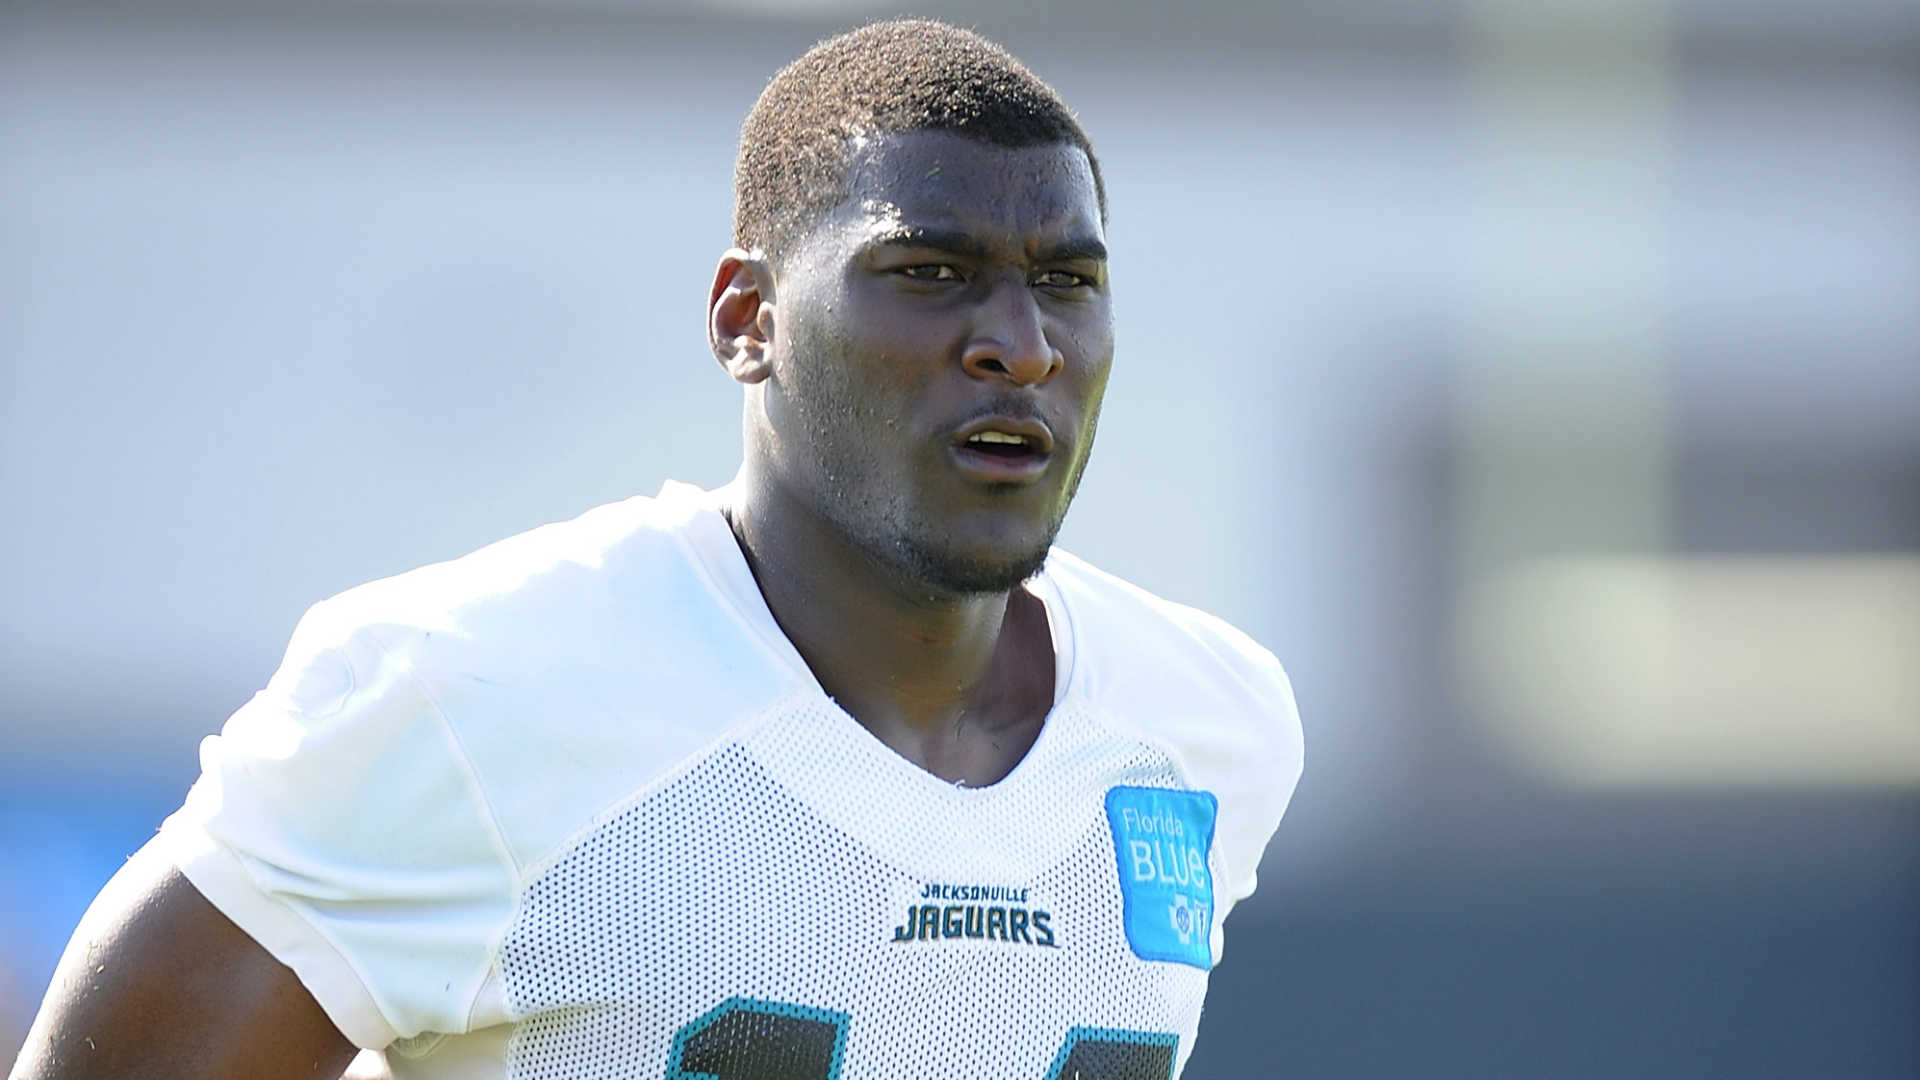 Justin Blackmon likely won't return from suspension, Jags GM says